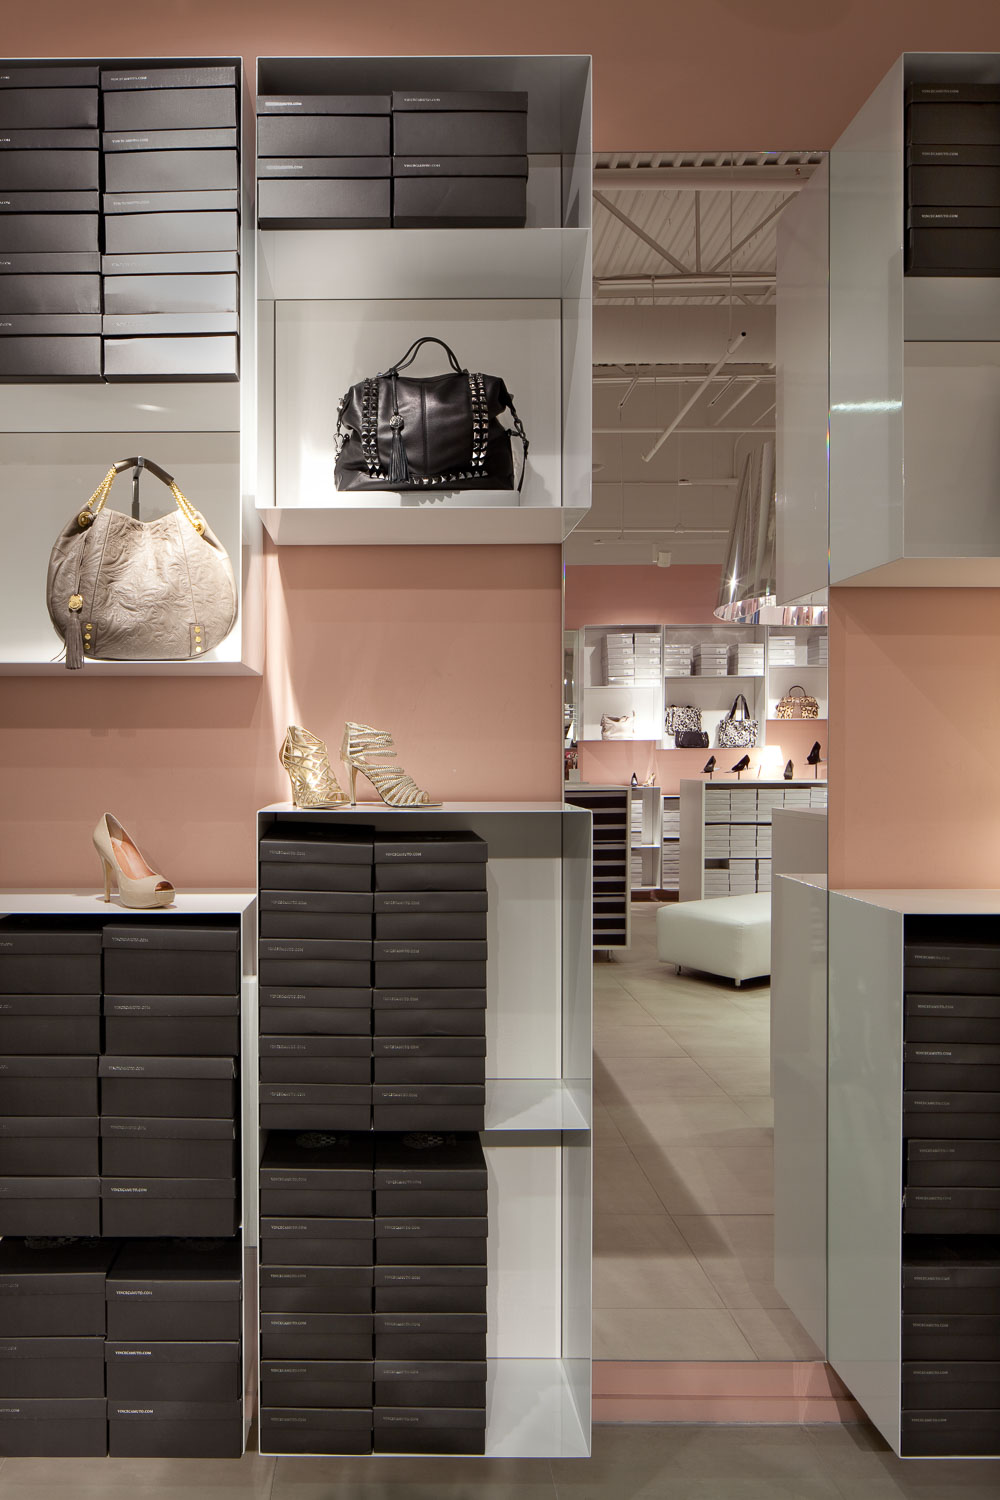 Vince Camuto Outlet Store Design